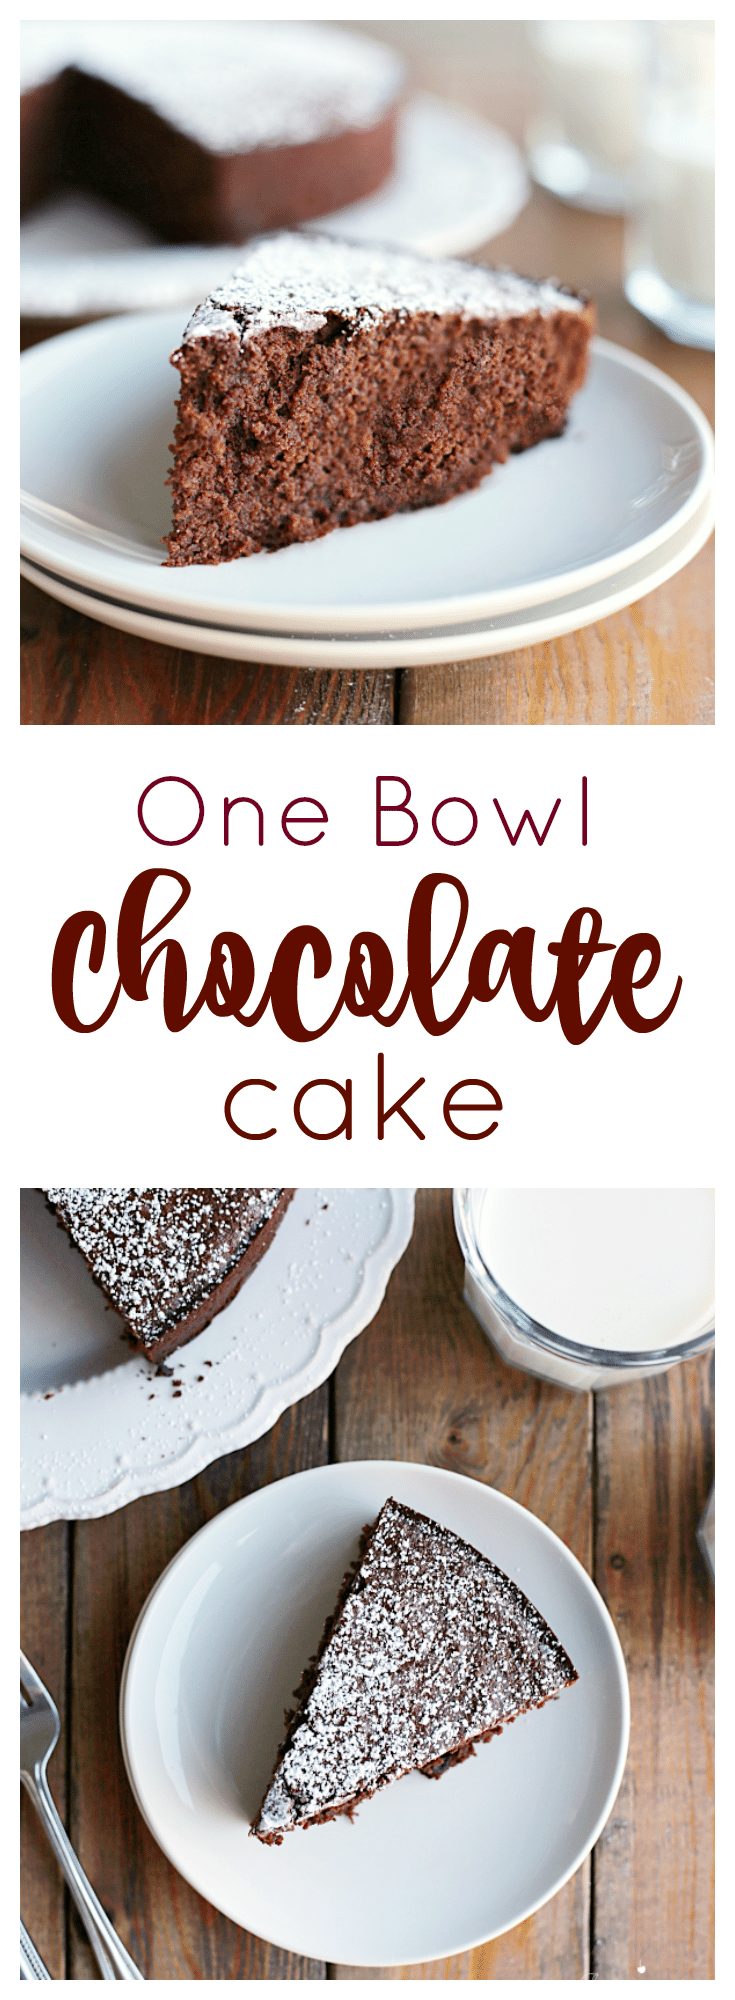 This one bowl chocolate cake is perfect when you have unexpected company or are craving something sweet. Dust the chocolate cake with powdered sugar for an easy presentation.